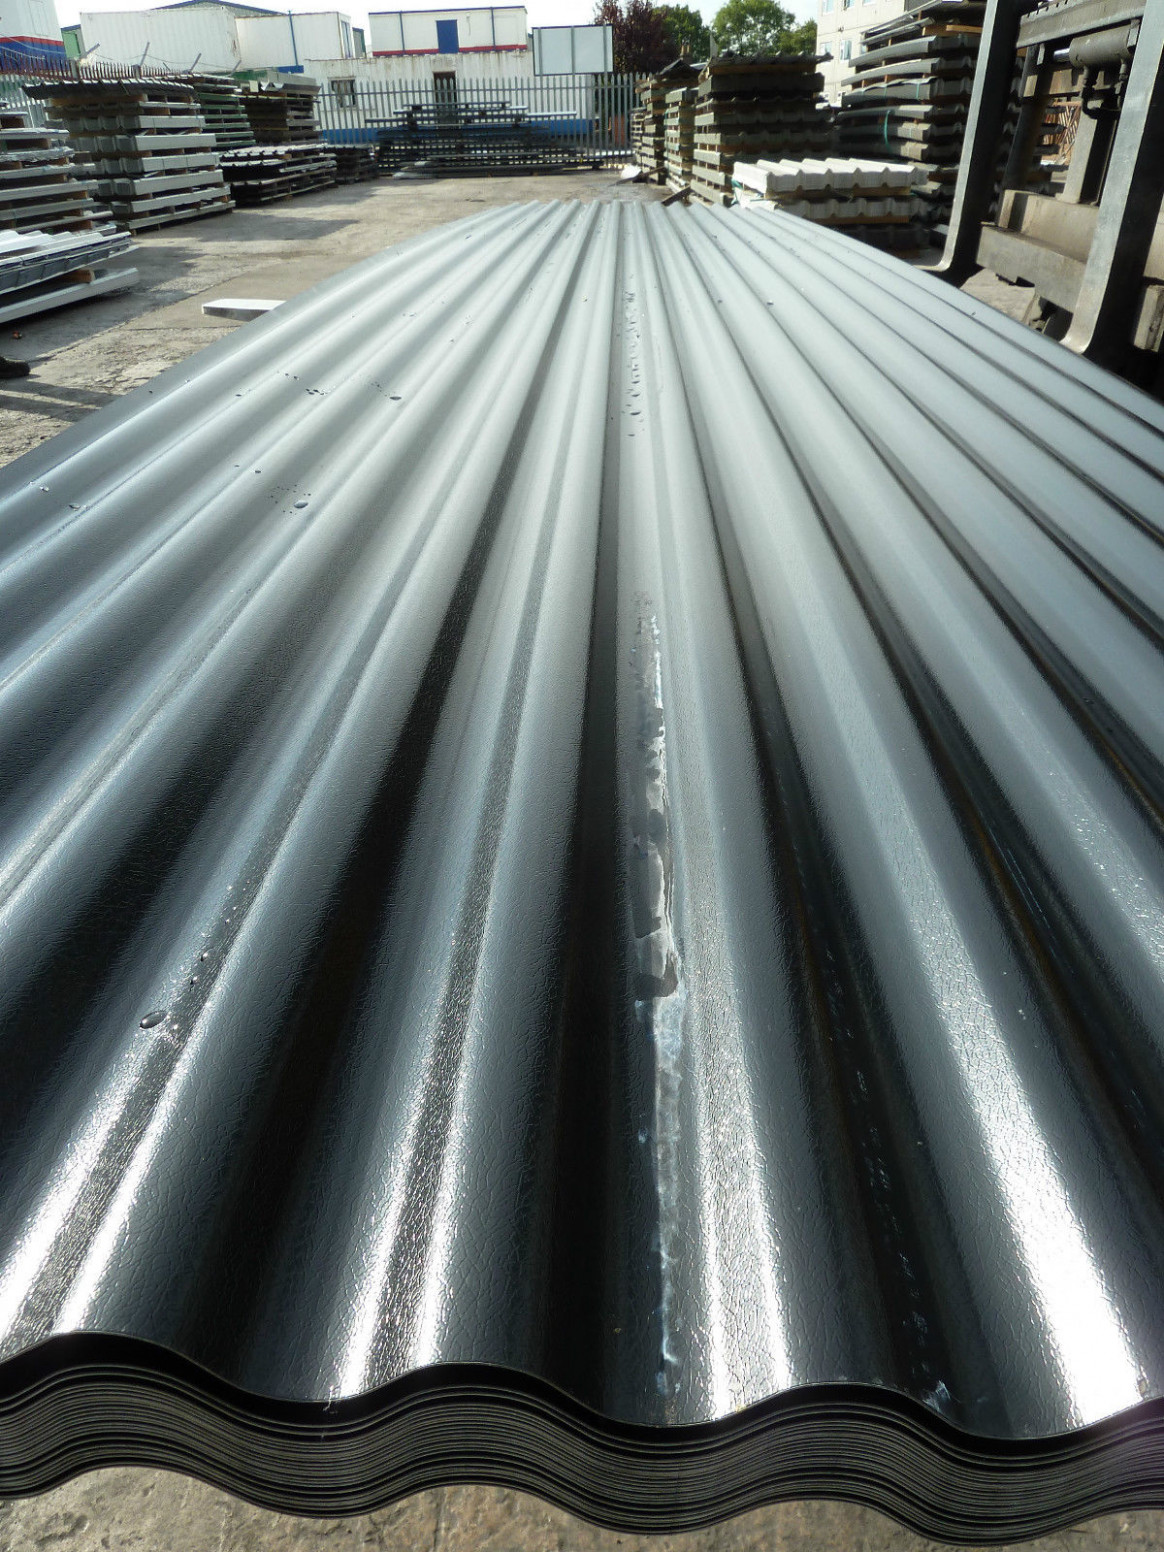 Roofing Sheets For Sheds, Garages & Workshops Steel/Metal ..